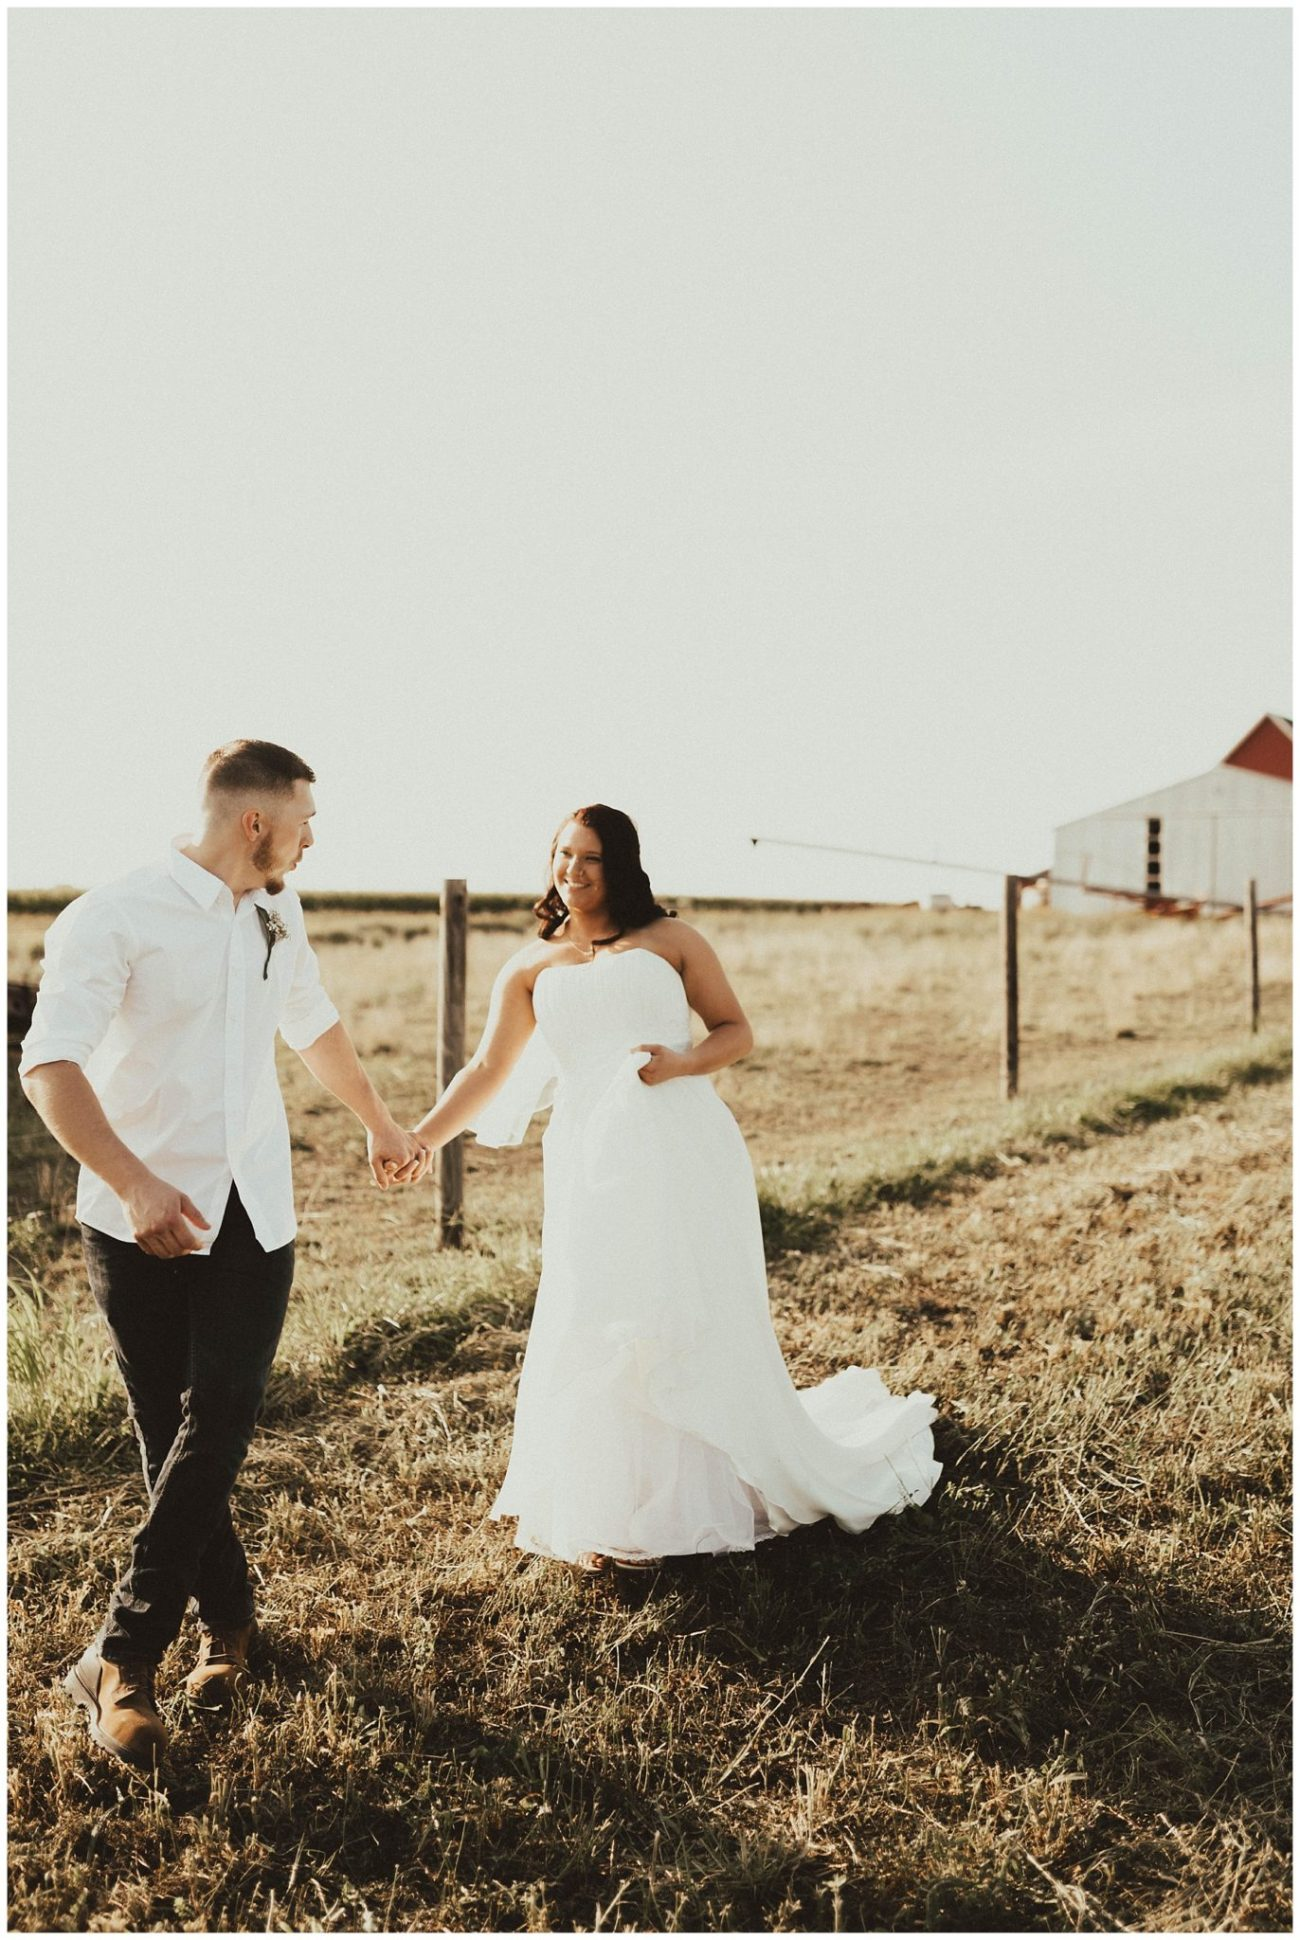 Devan Molly Midwest Bridals Lauren F Otography Central Illinois Wedding Photographer Chicago Wedding Photographer Peoria Il Wedding Photographer